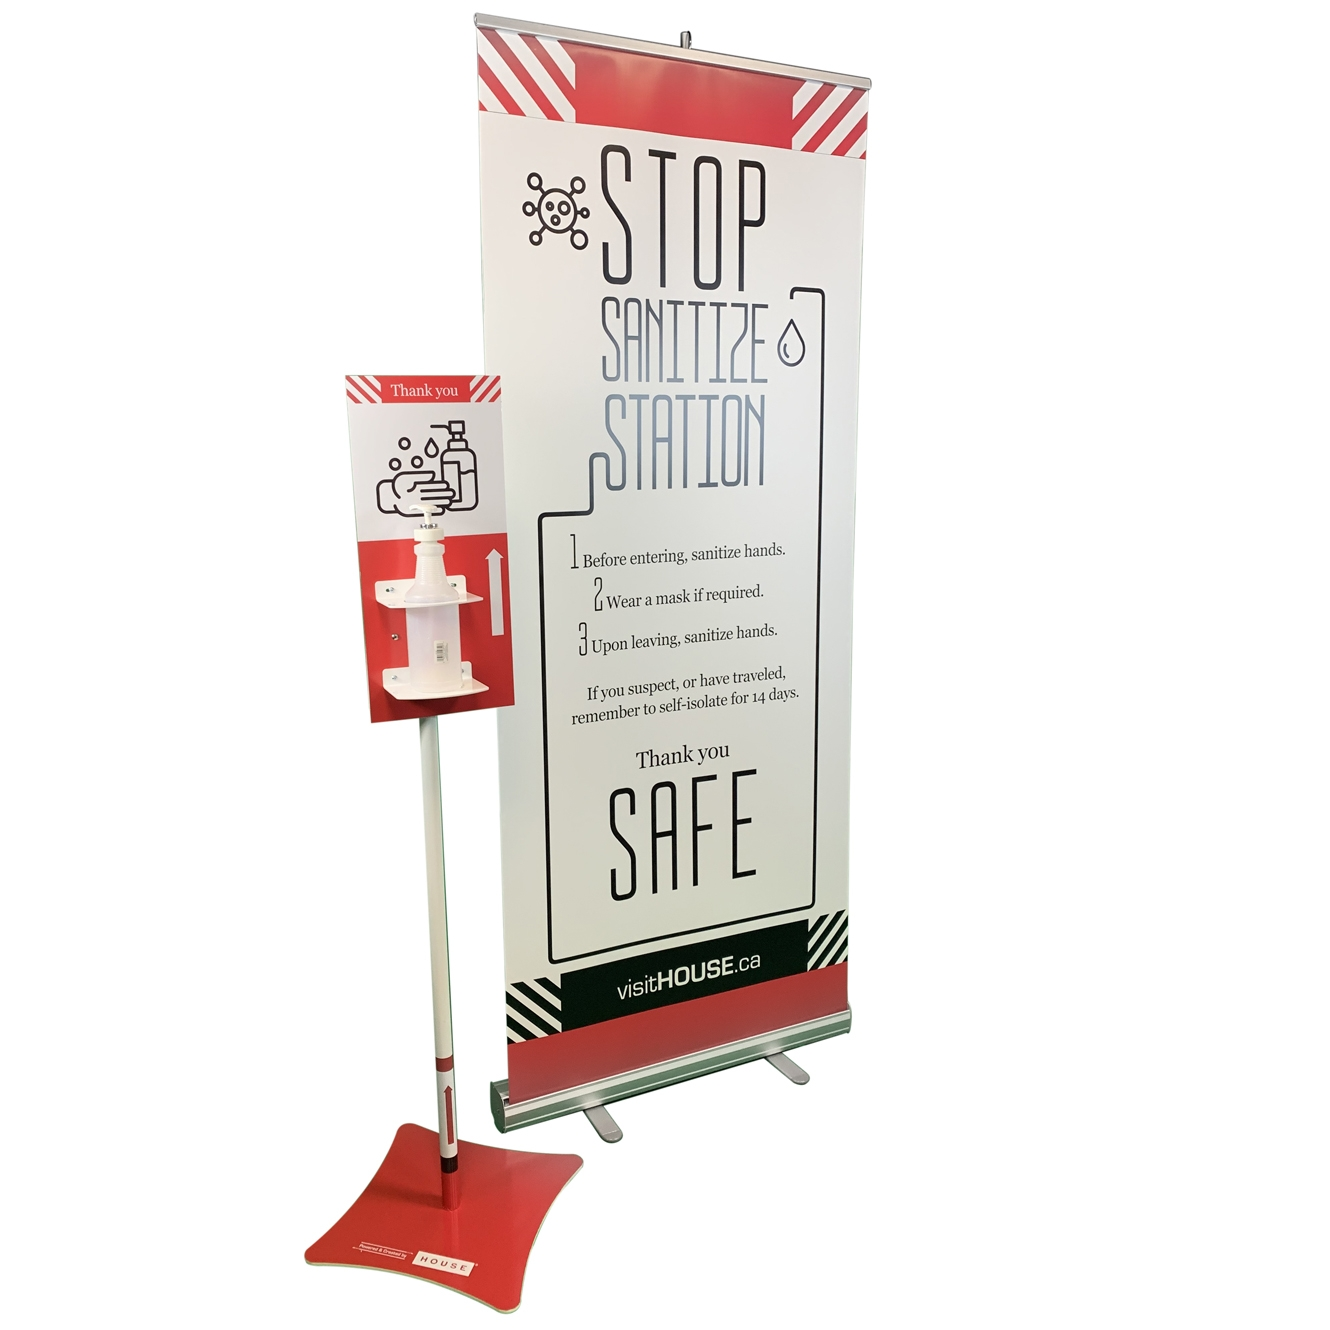 Sanitize Station Kit 2